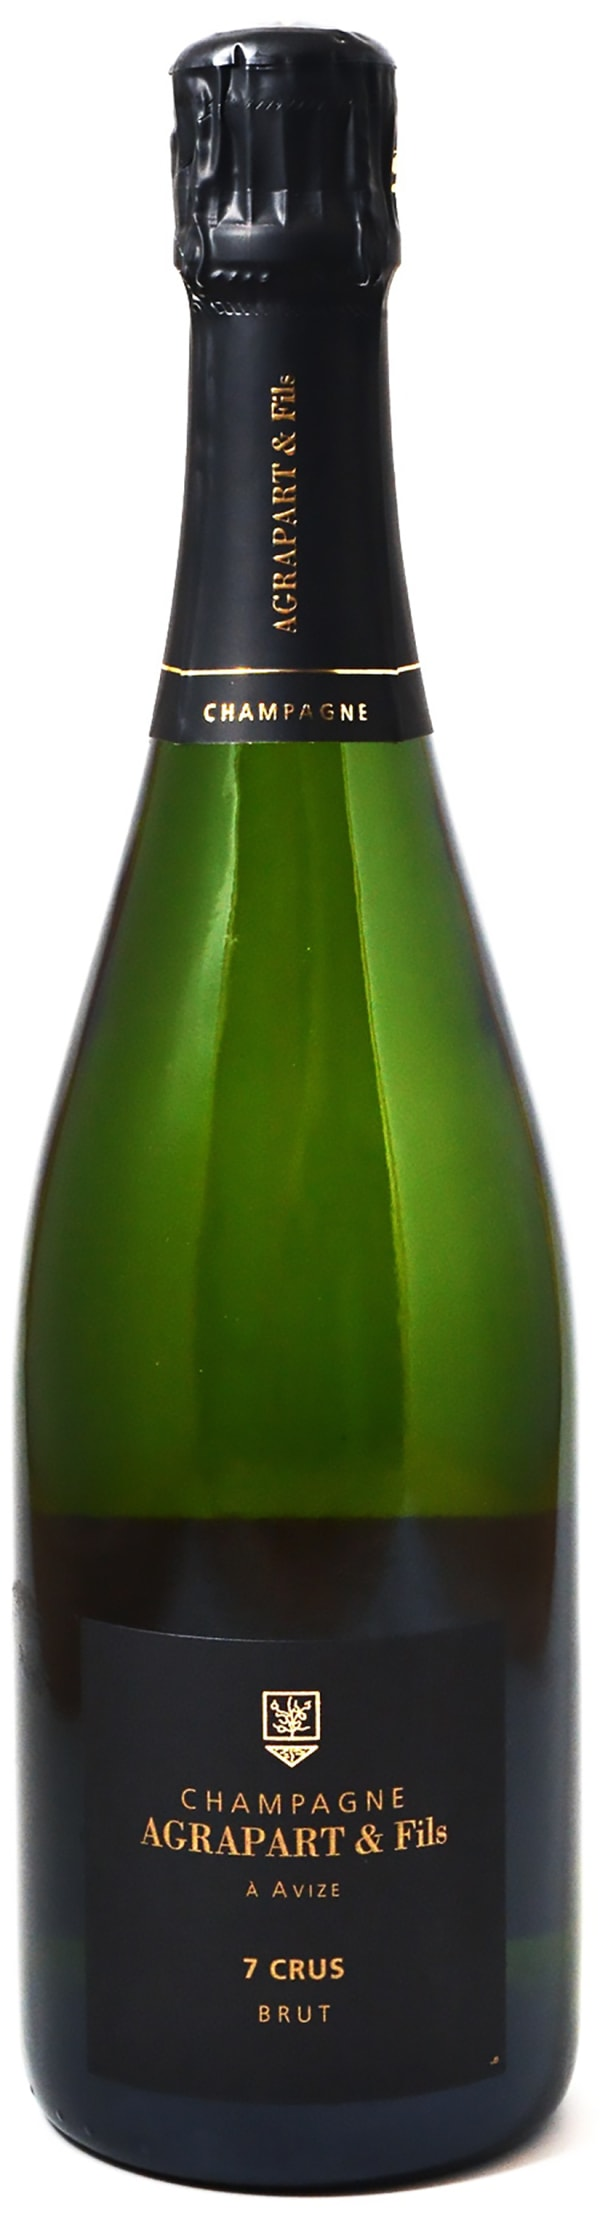 Agrapart 7 Crus Champagne Brut